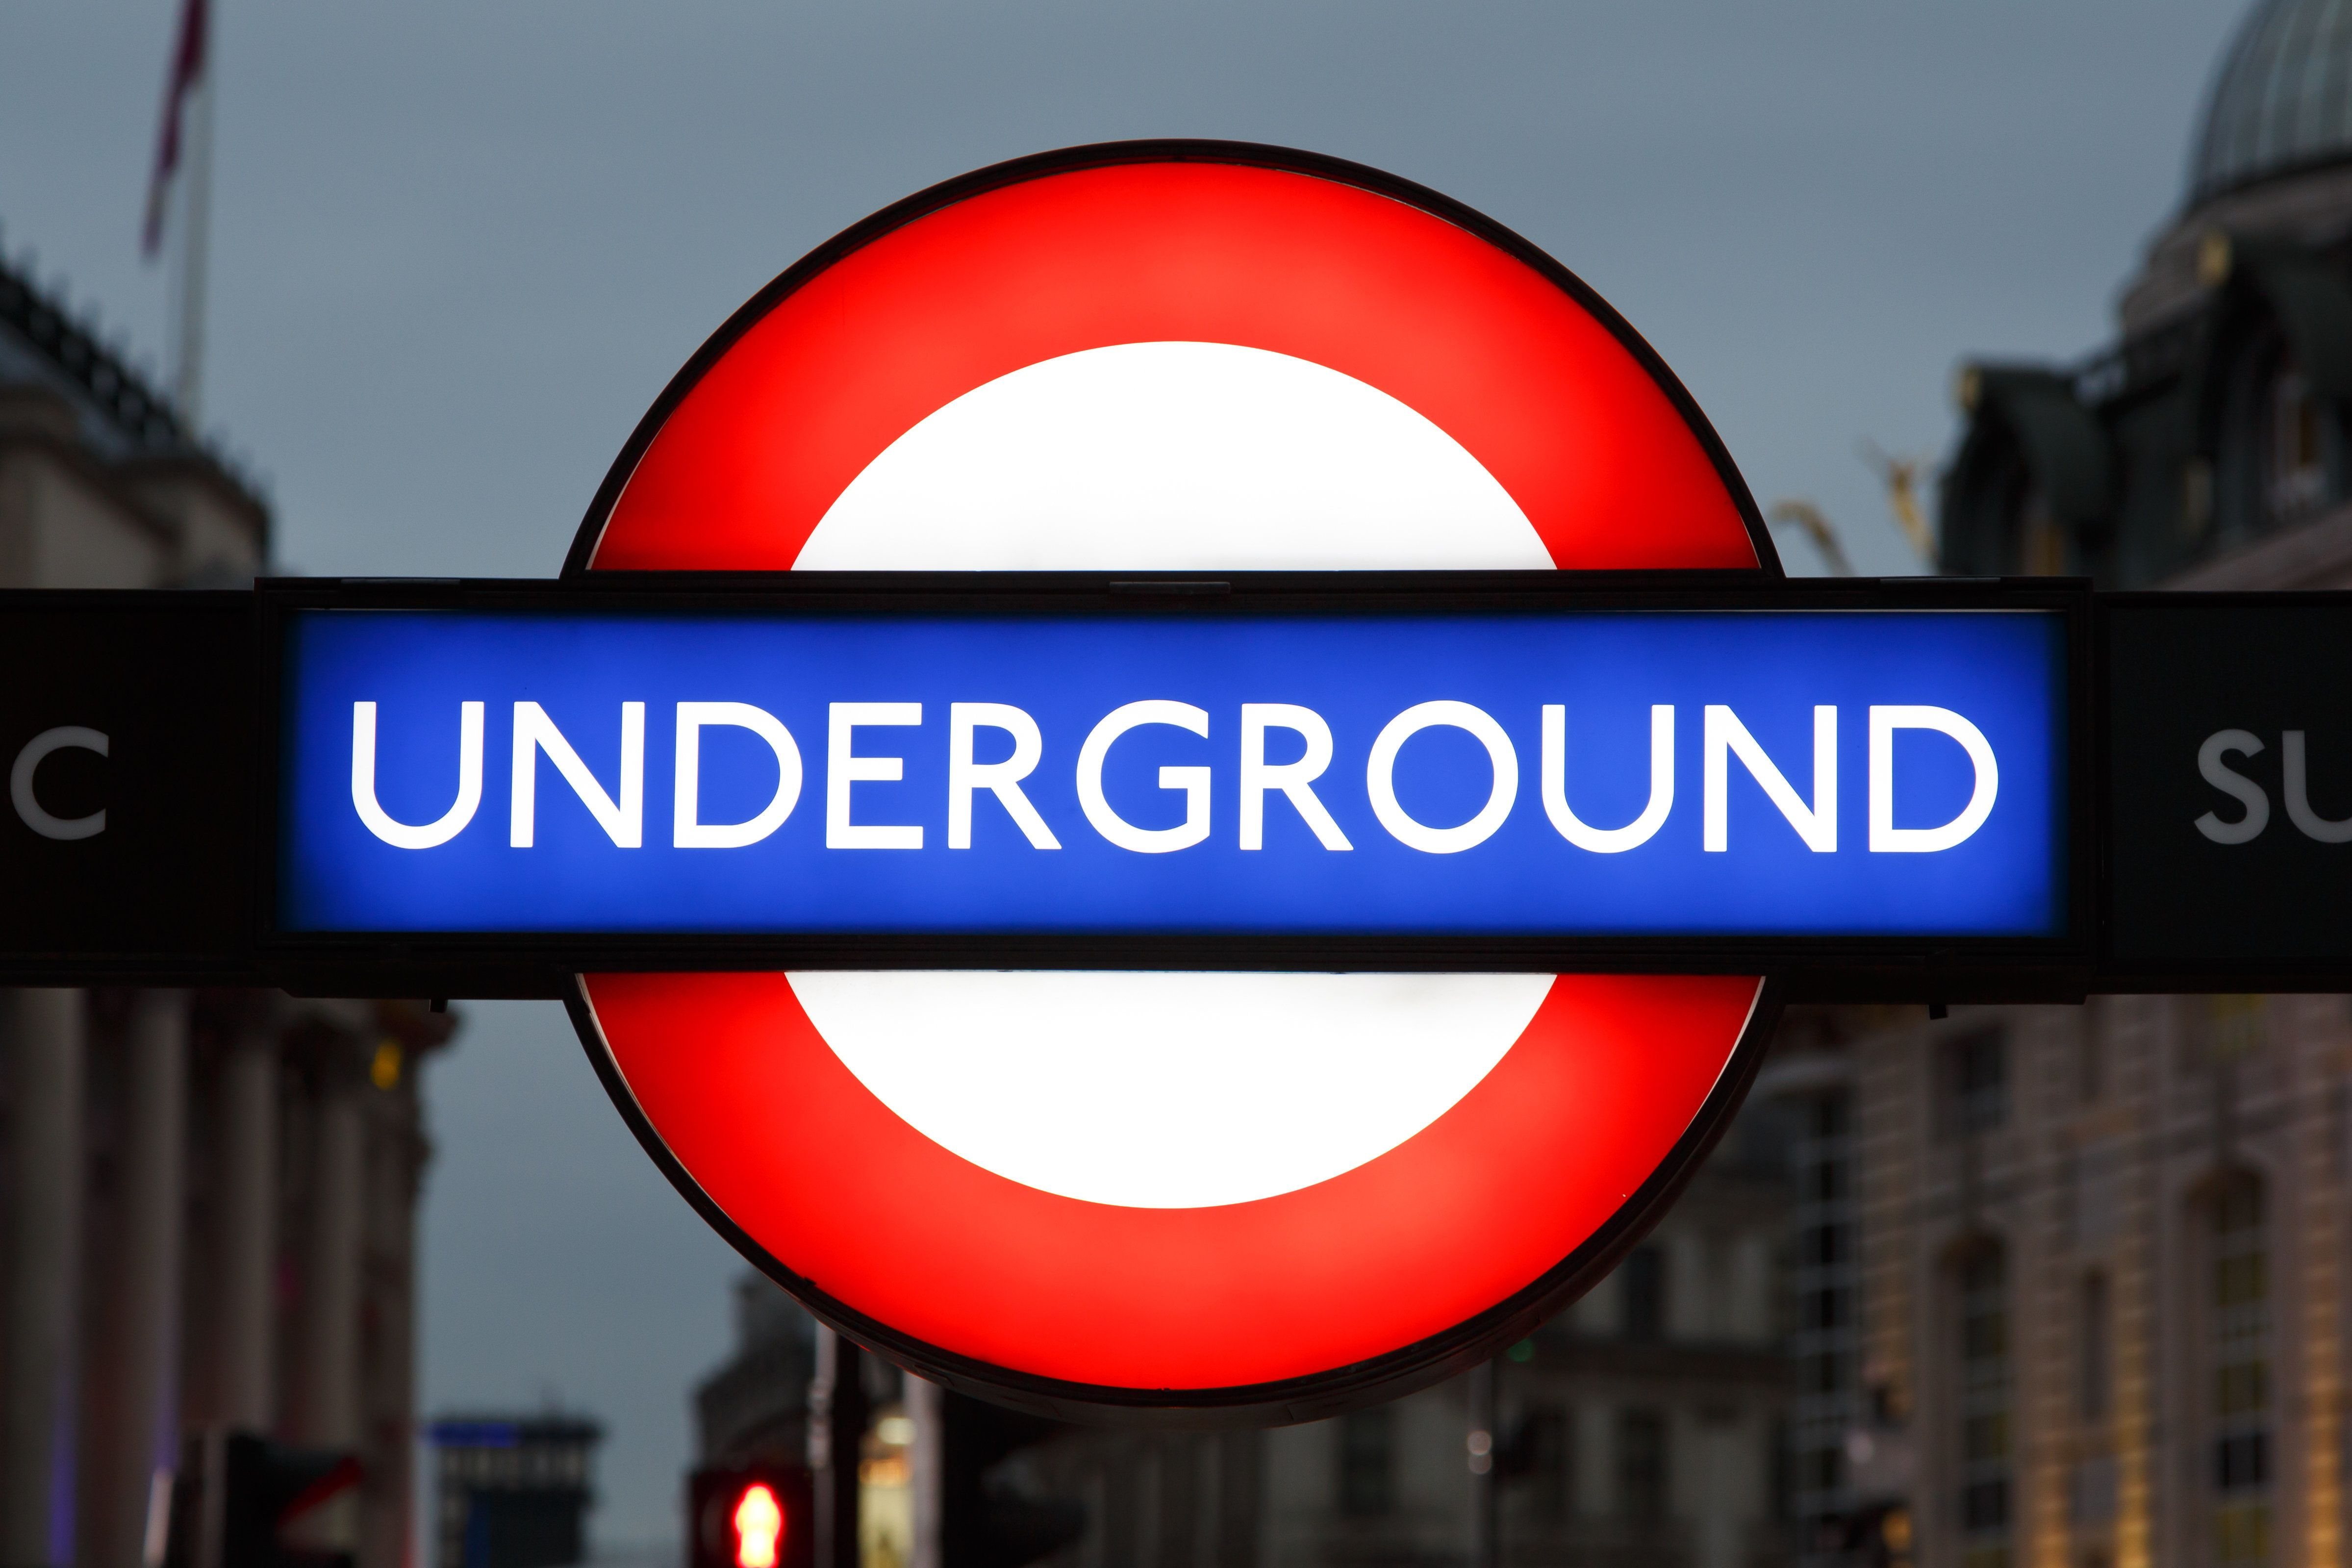 <strong>A man has been charged with attempted murder over an incident on the London Underground&nbsp;</strong>